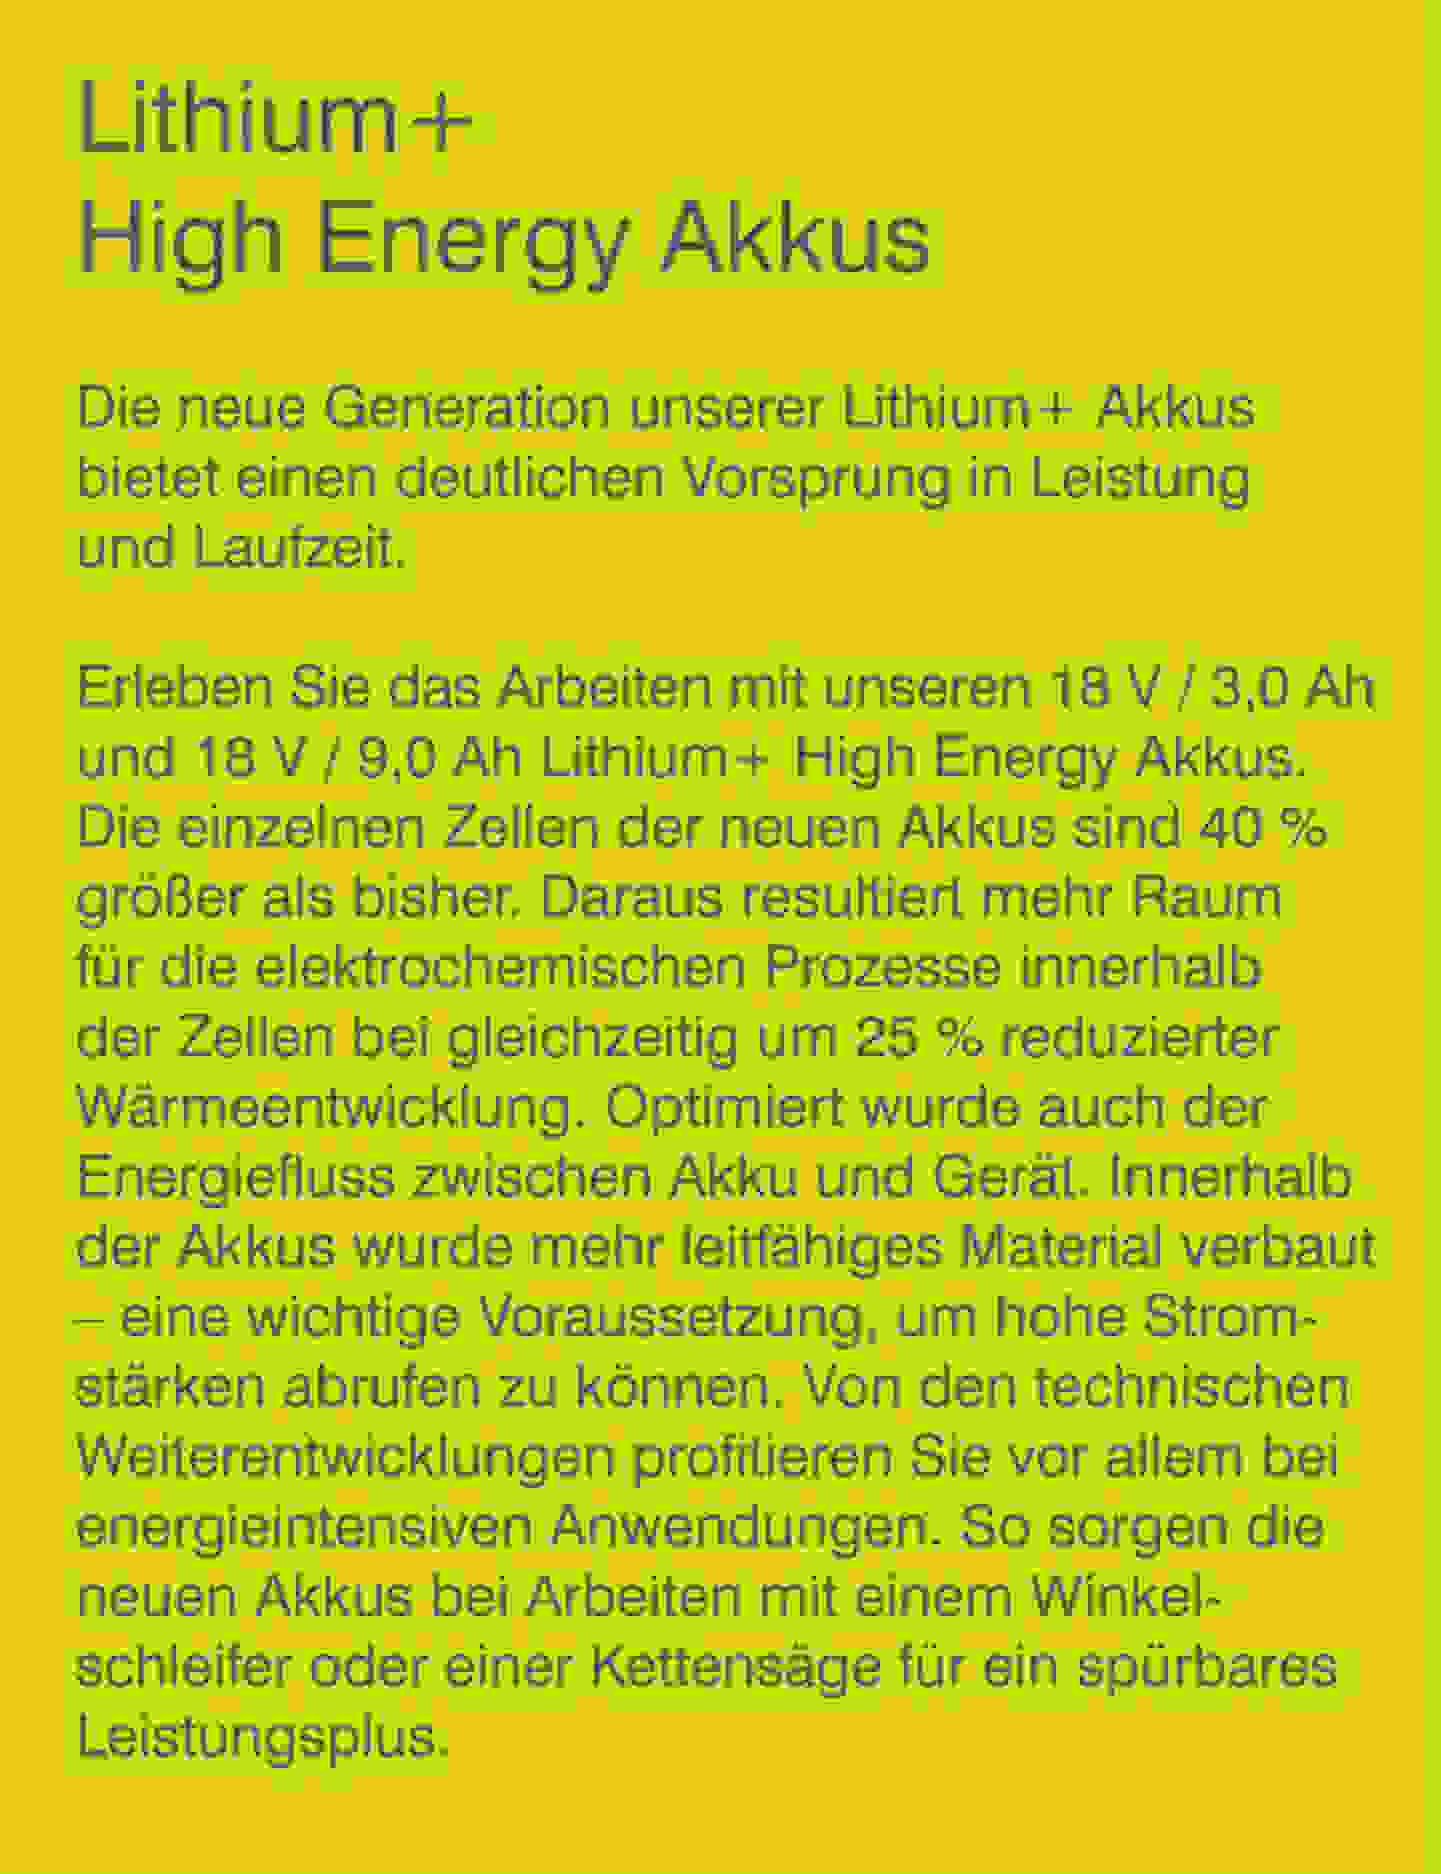 Lithium+ High Energy Akkus